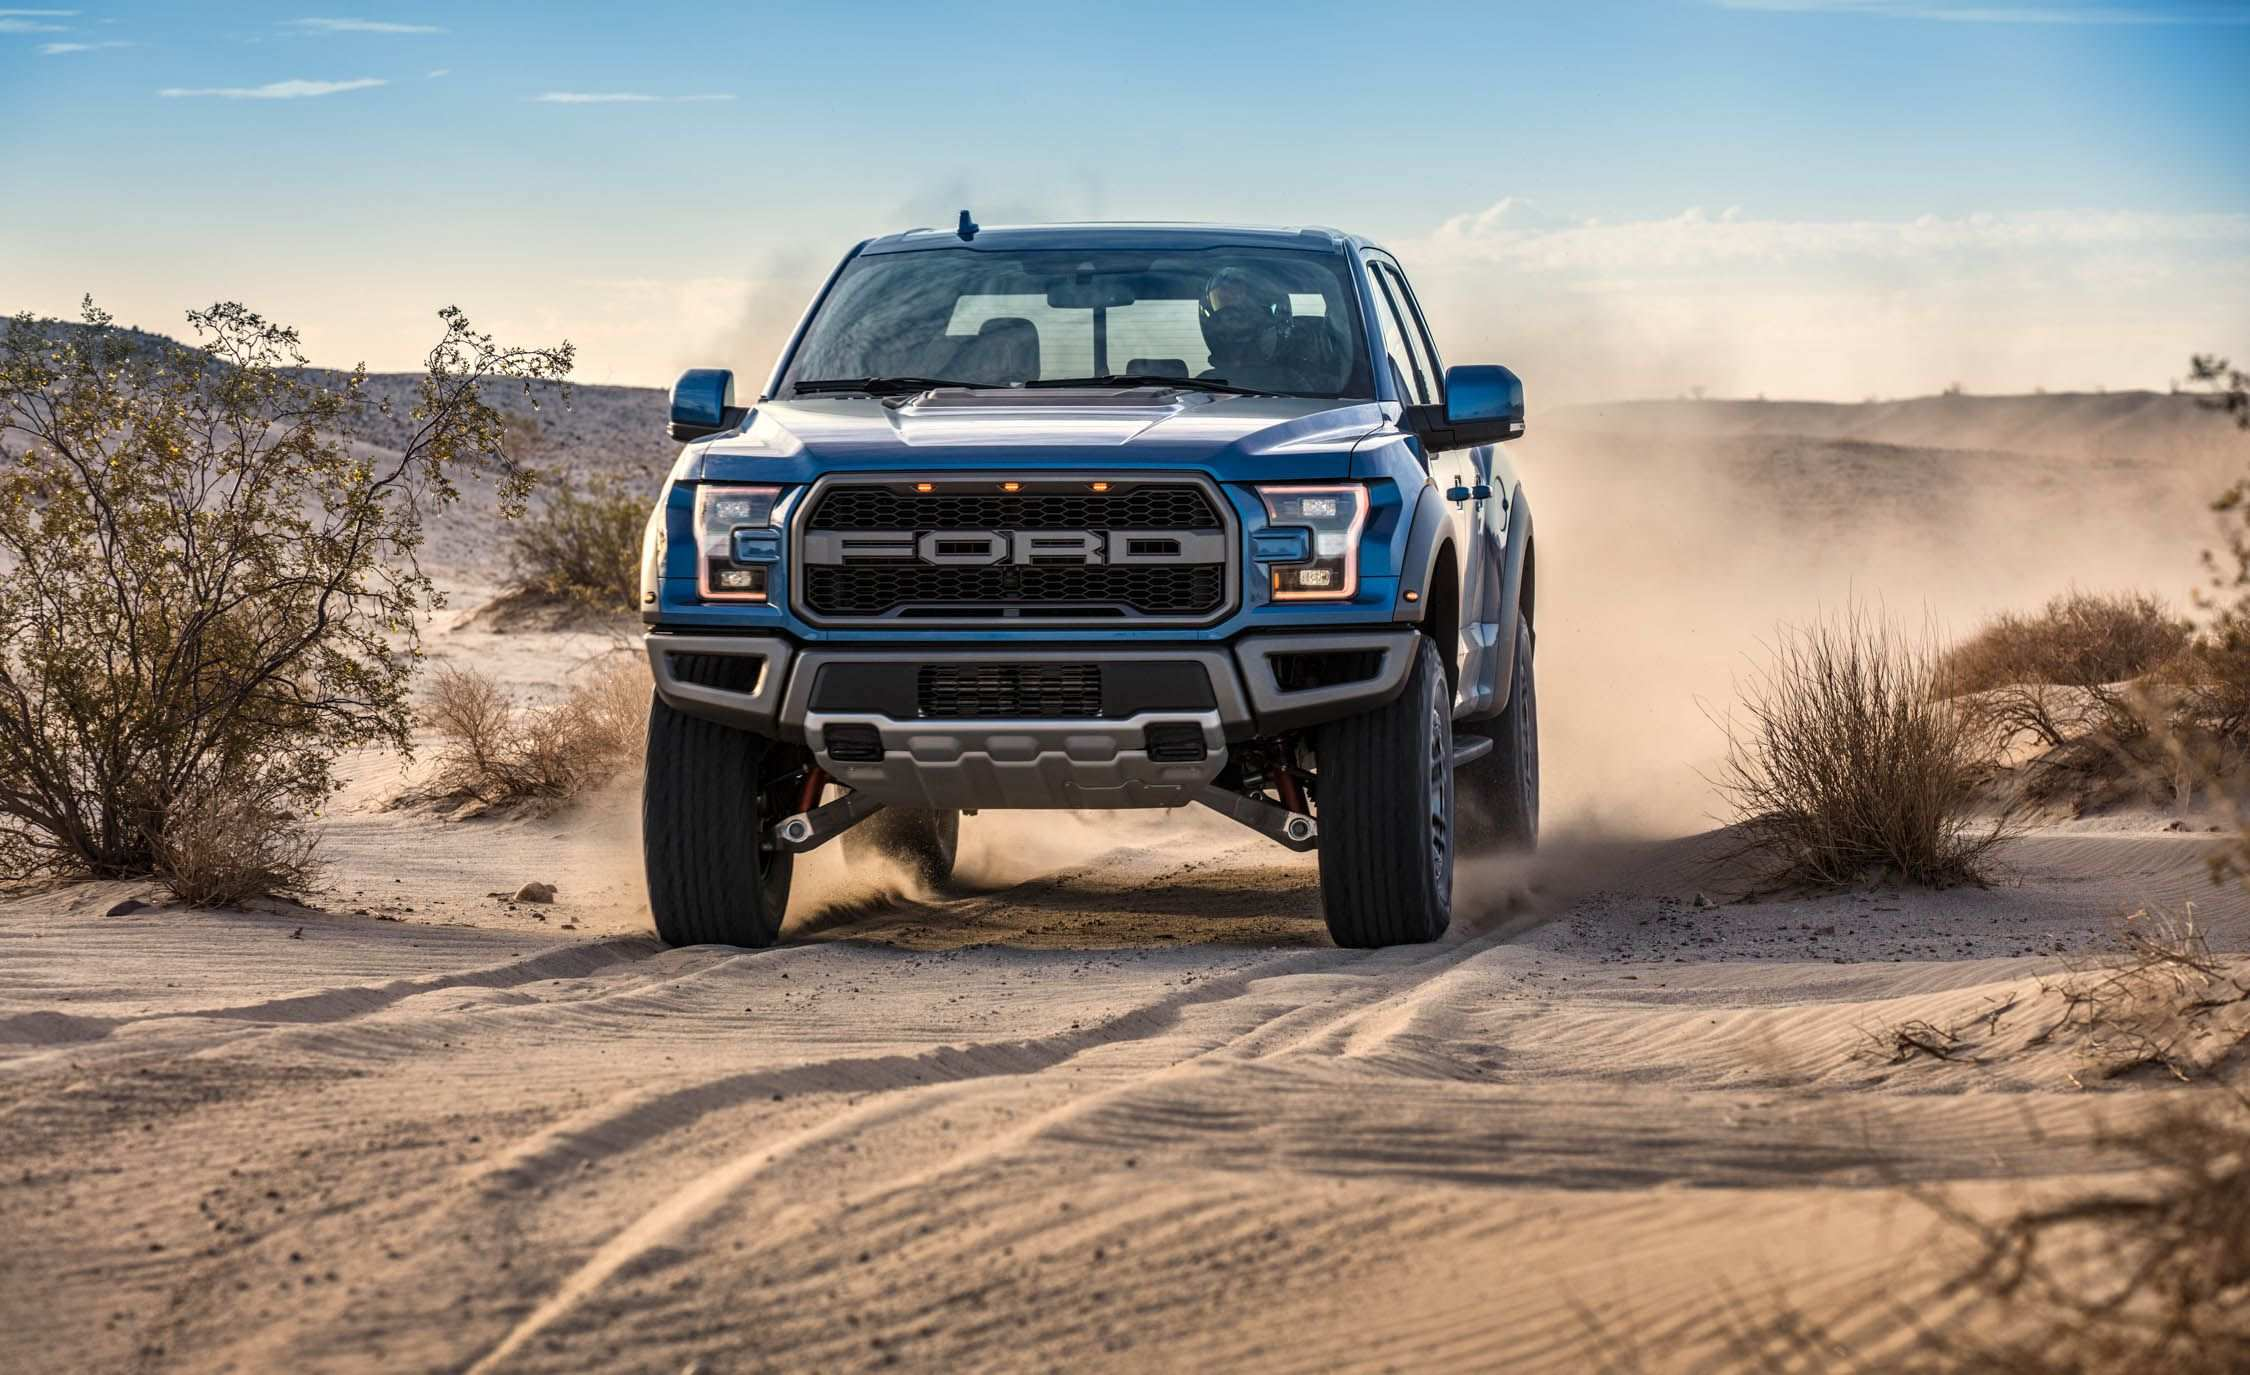 14 Gallery of 2019 Ford Velociraptor Picture for 2019 Ford Velociraptor